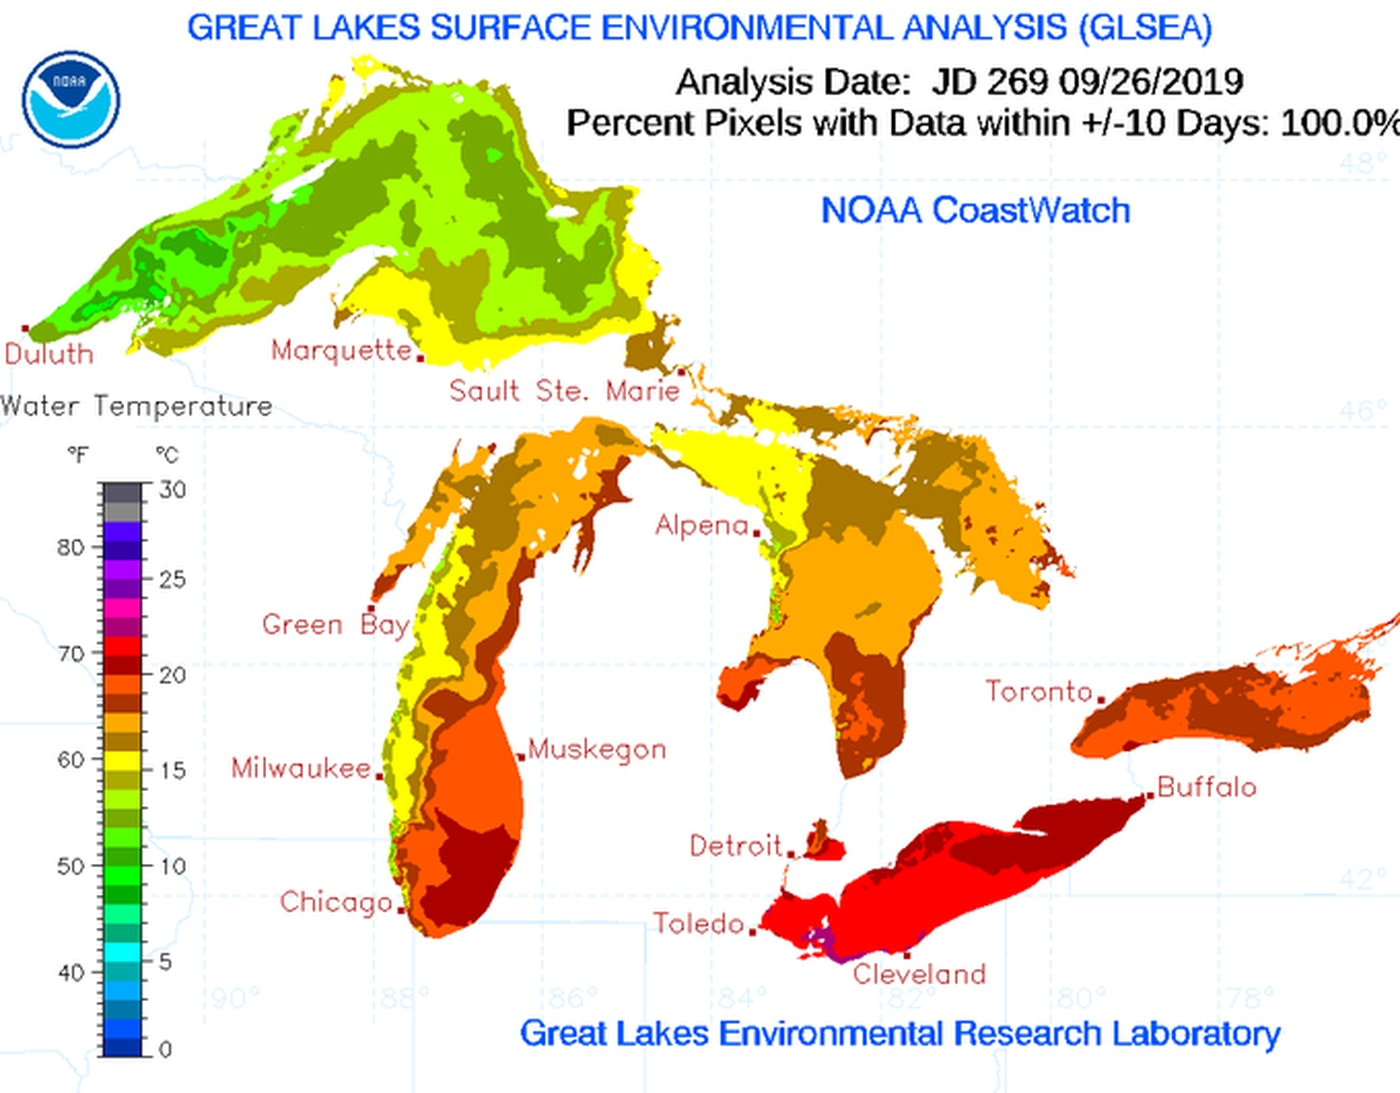 lake erie water temperature map Lake Erie Is About 5 Degrees Warmer Than Normal For This Time Of lake erie water temperature map